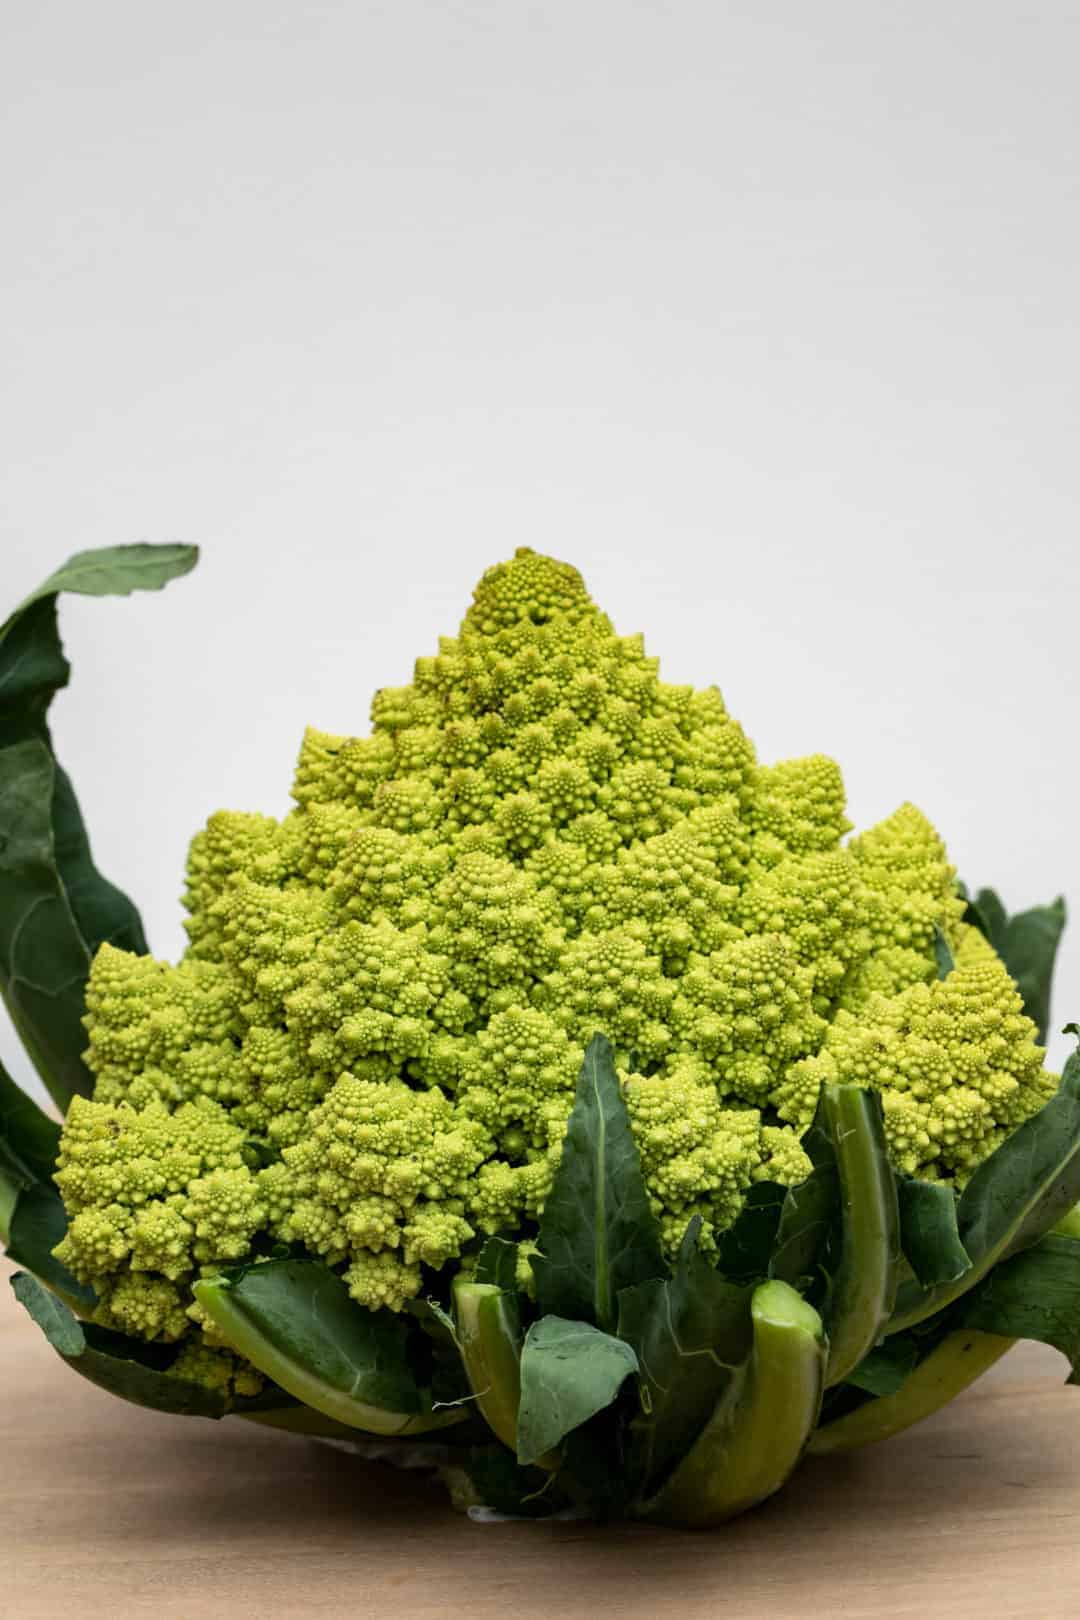 romanesco broccoli head